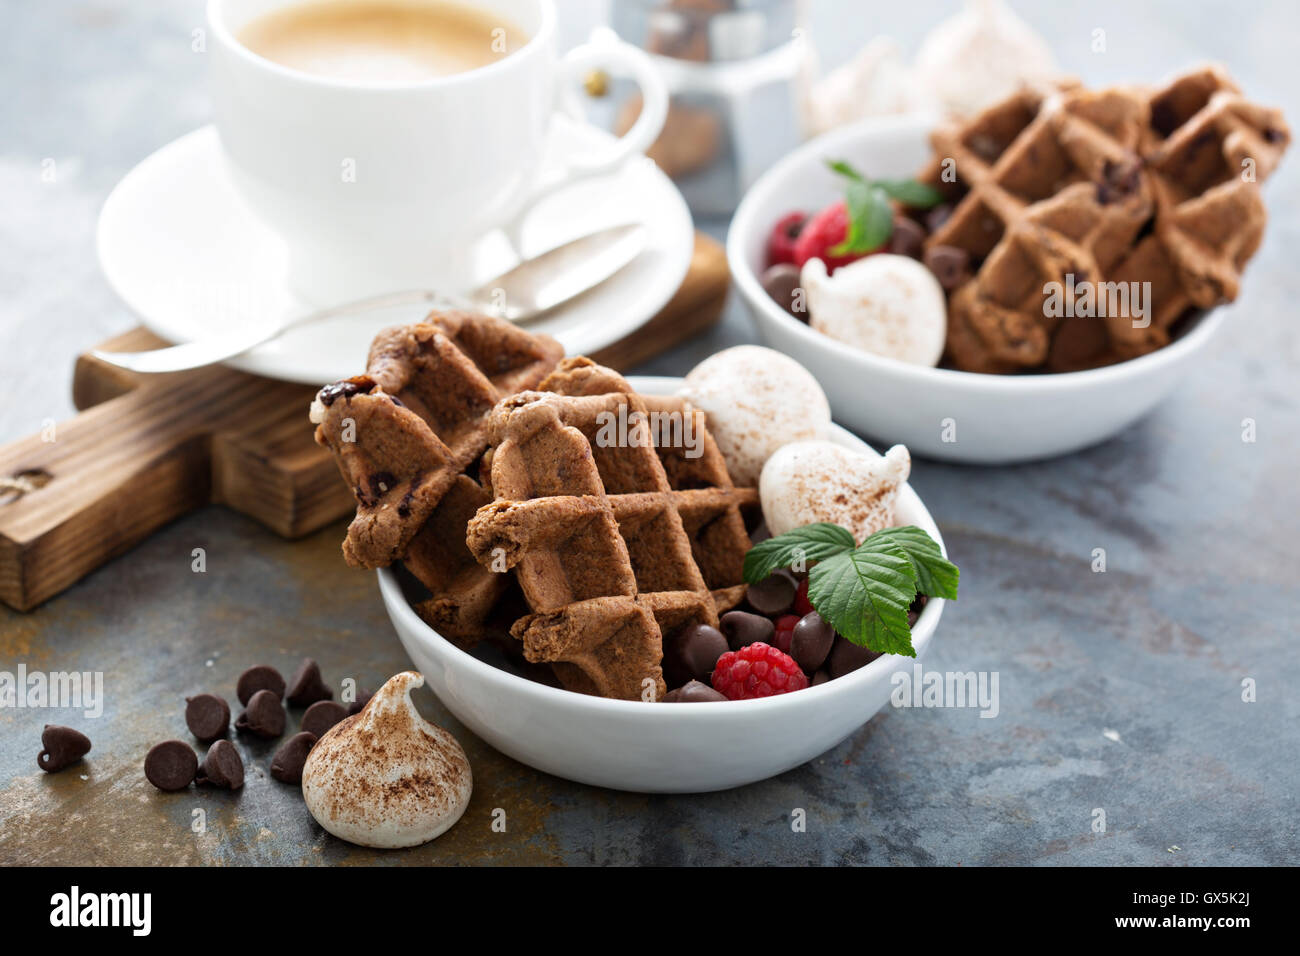 Chocolate waffles with meringues and coffee - Stock Image